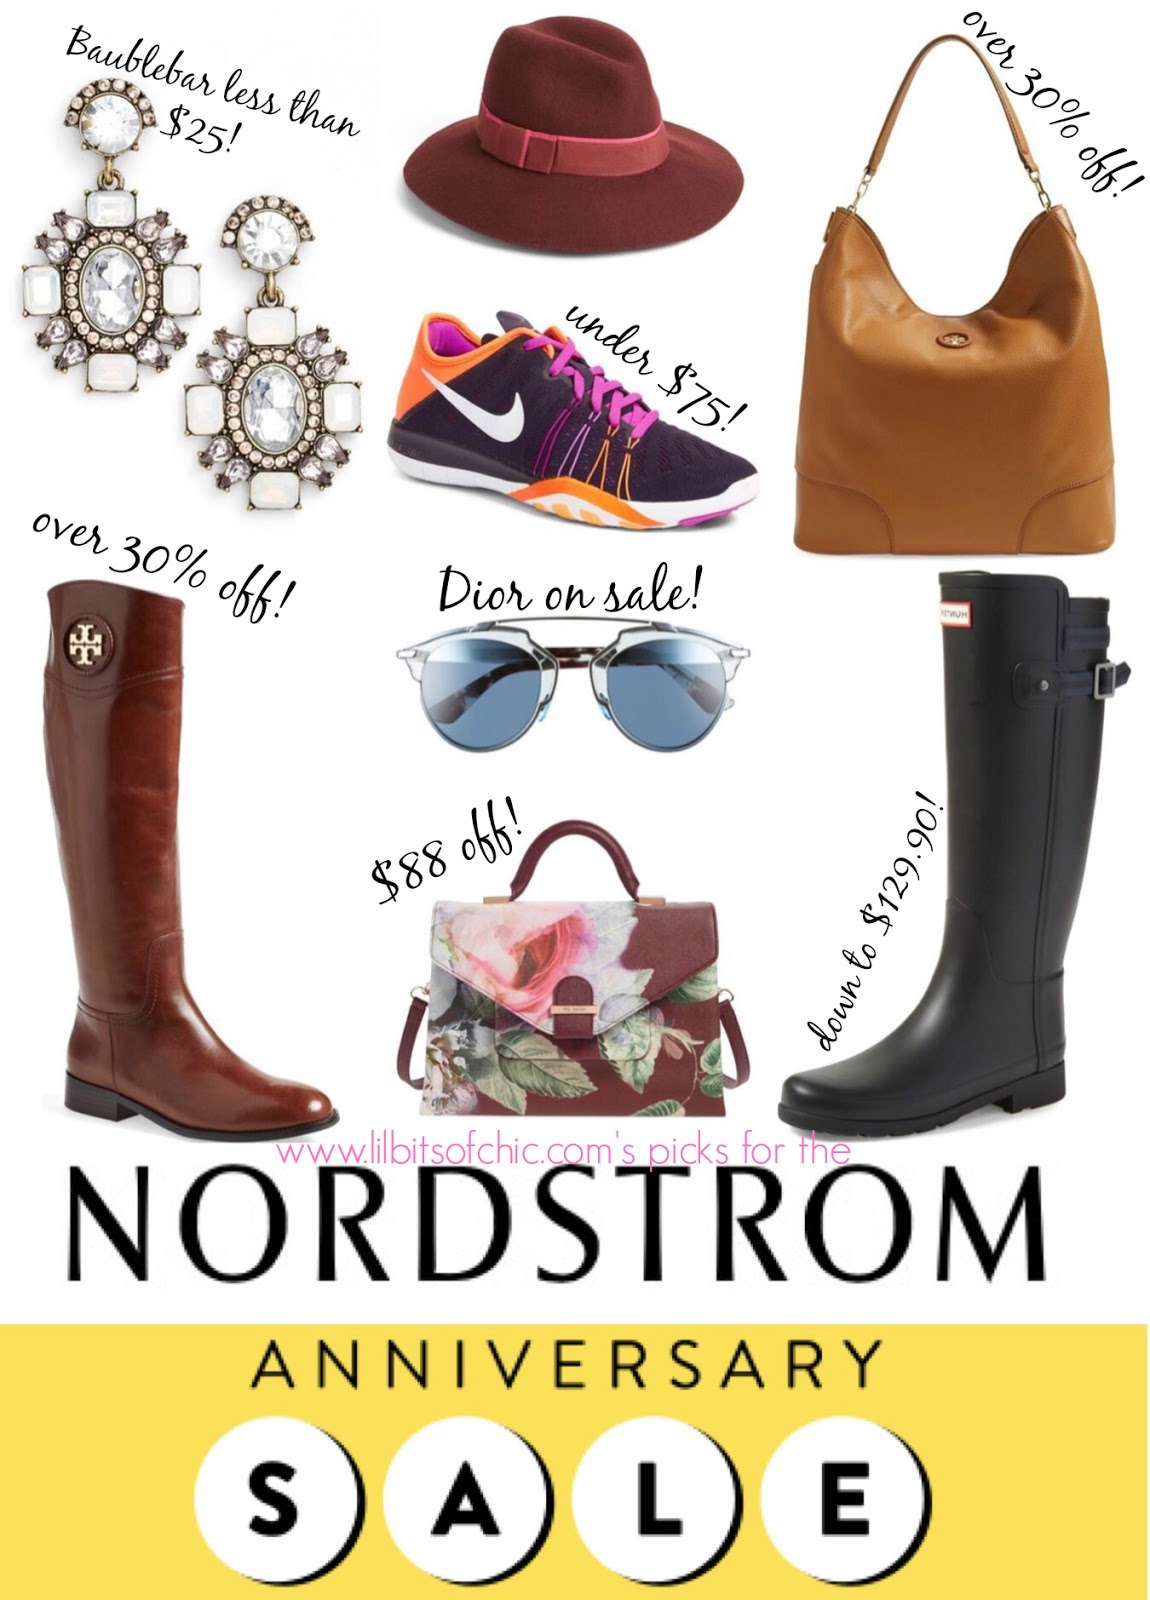 Nordstrom Anniversary Sale Early Access, Nordstrom Anniversary Sale Early Access Picks- Accessories and Shoes, Nordstrom deals on shoes, Nordstrom anniversary sale shoes, blogger picks for nordstrom anniversary sale